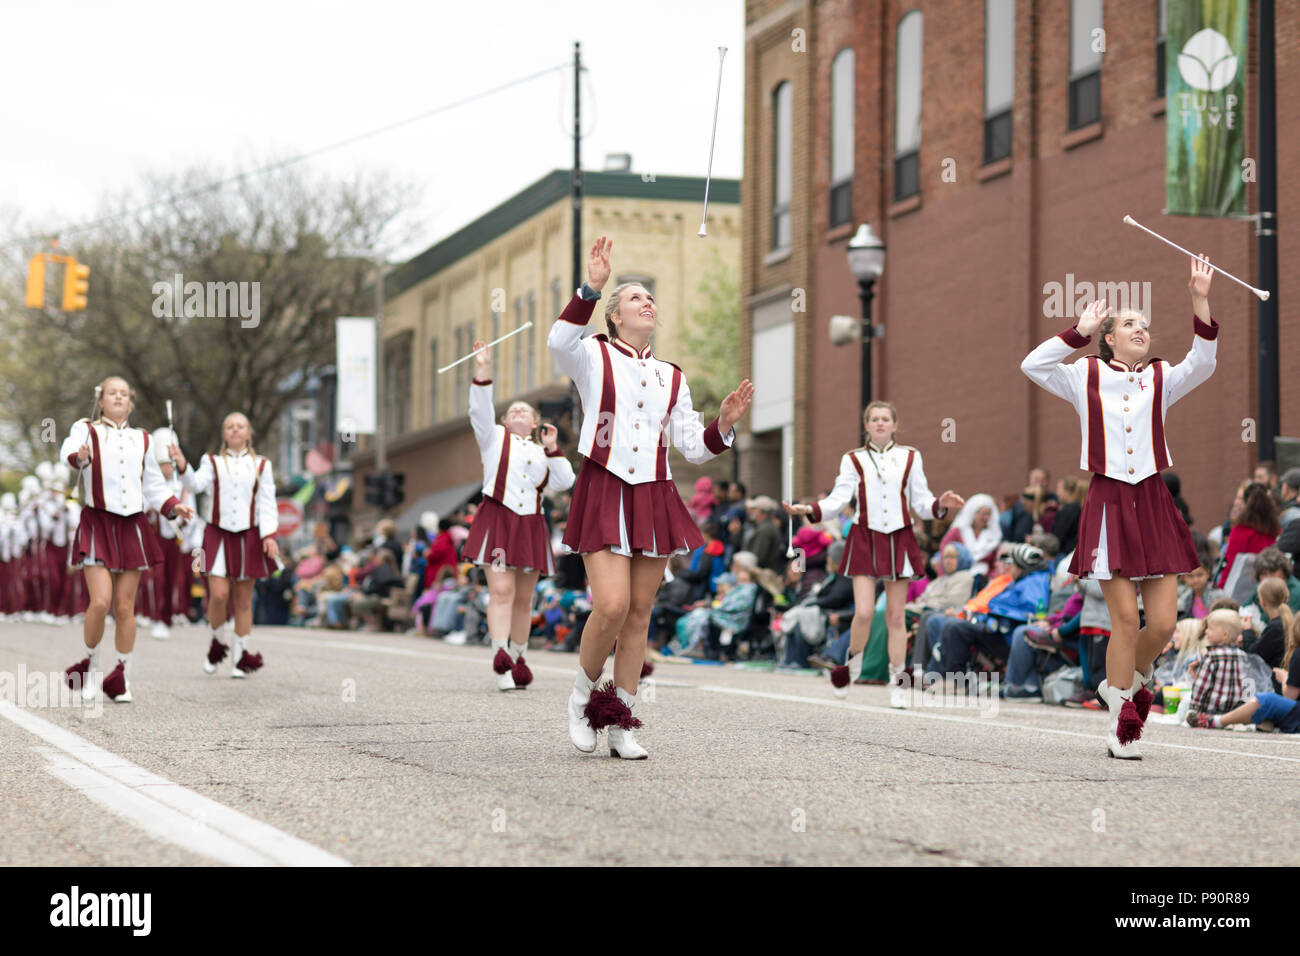 Dirty Dancing Muziek Highschool Dance Stock Photos Highschool Dance Stock Images Alamy